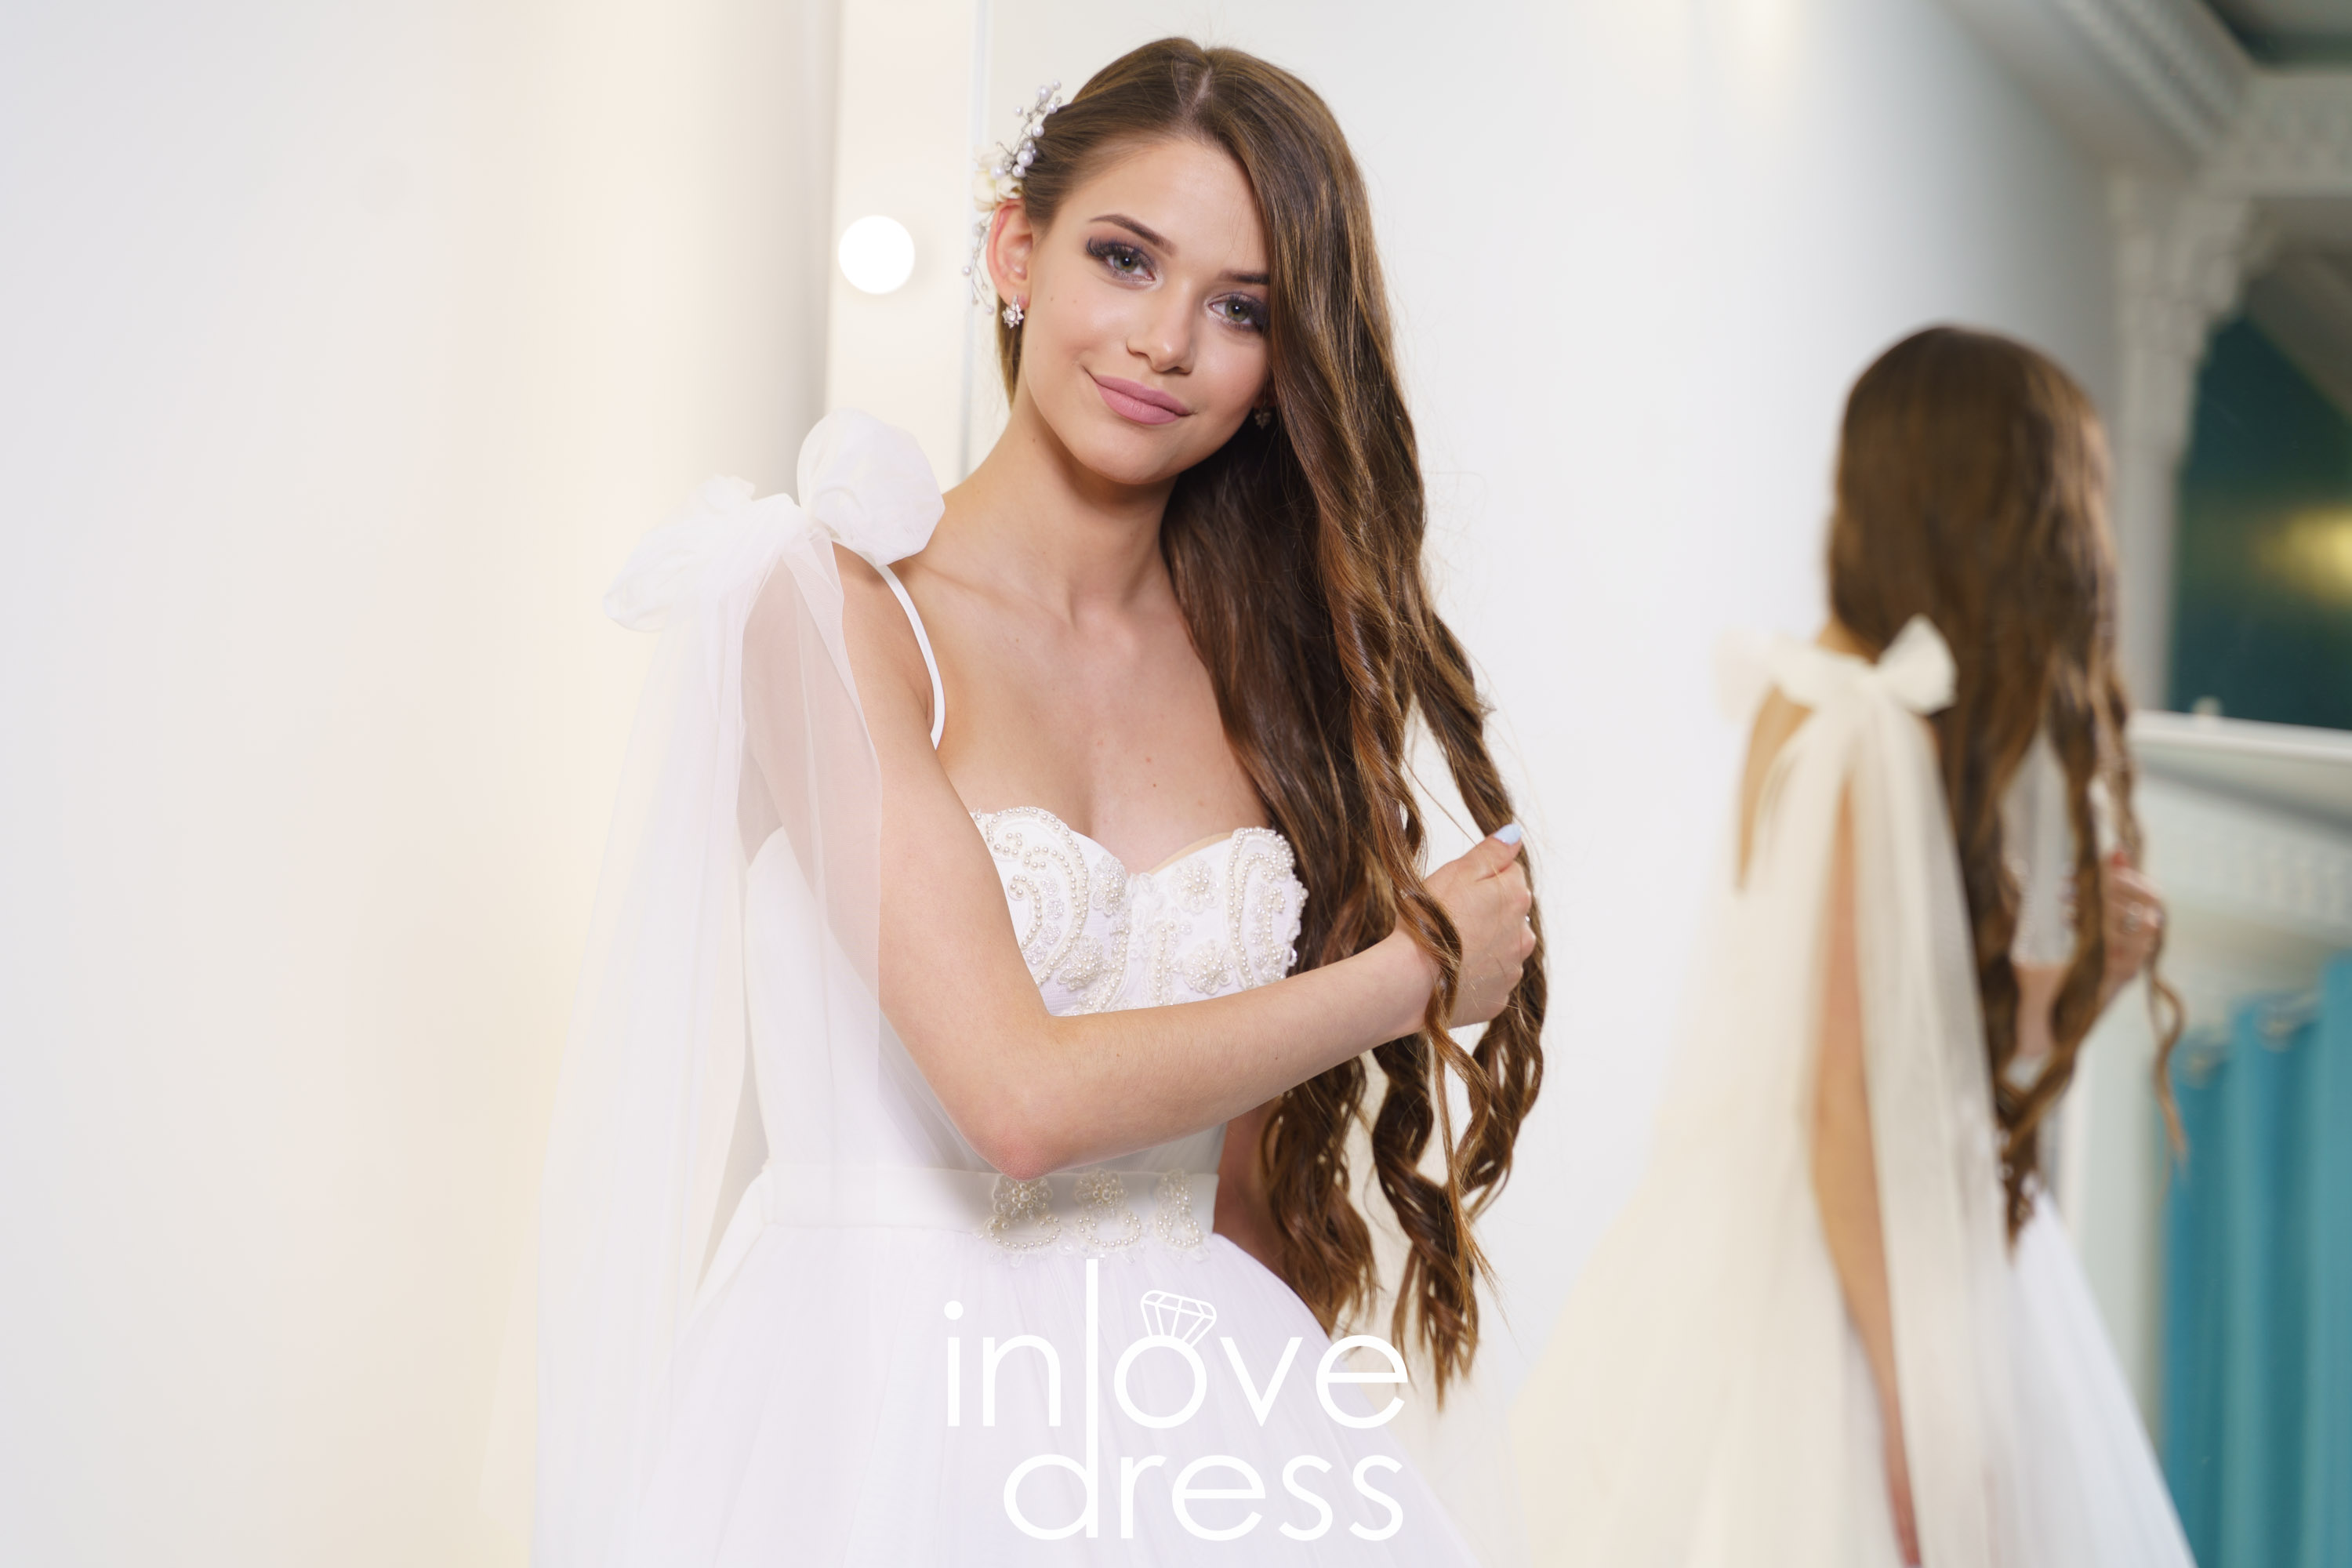 Inlove dress в Казани